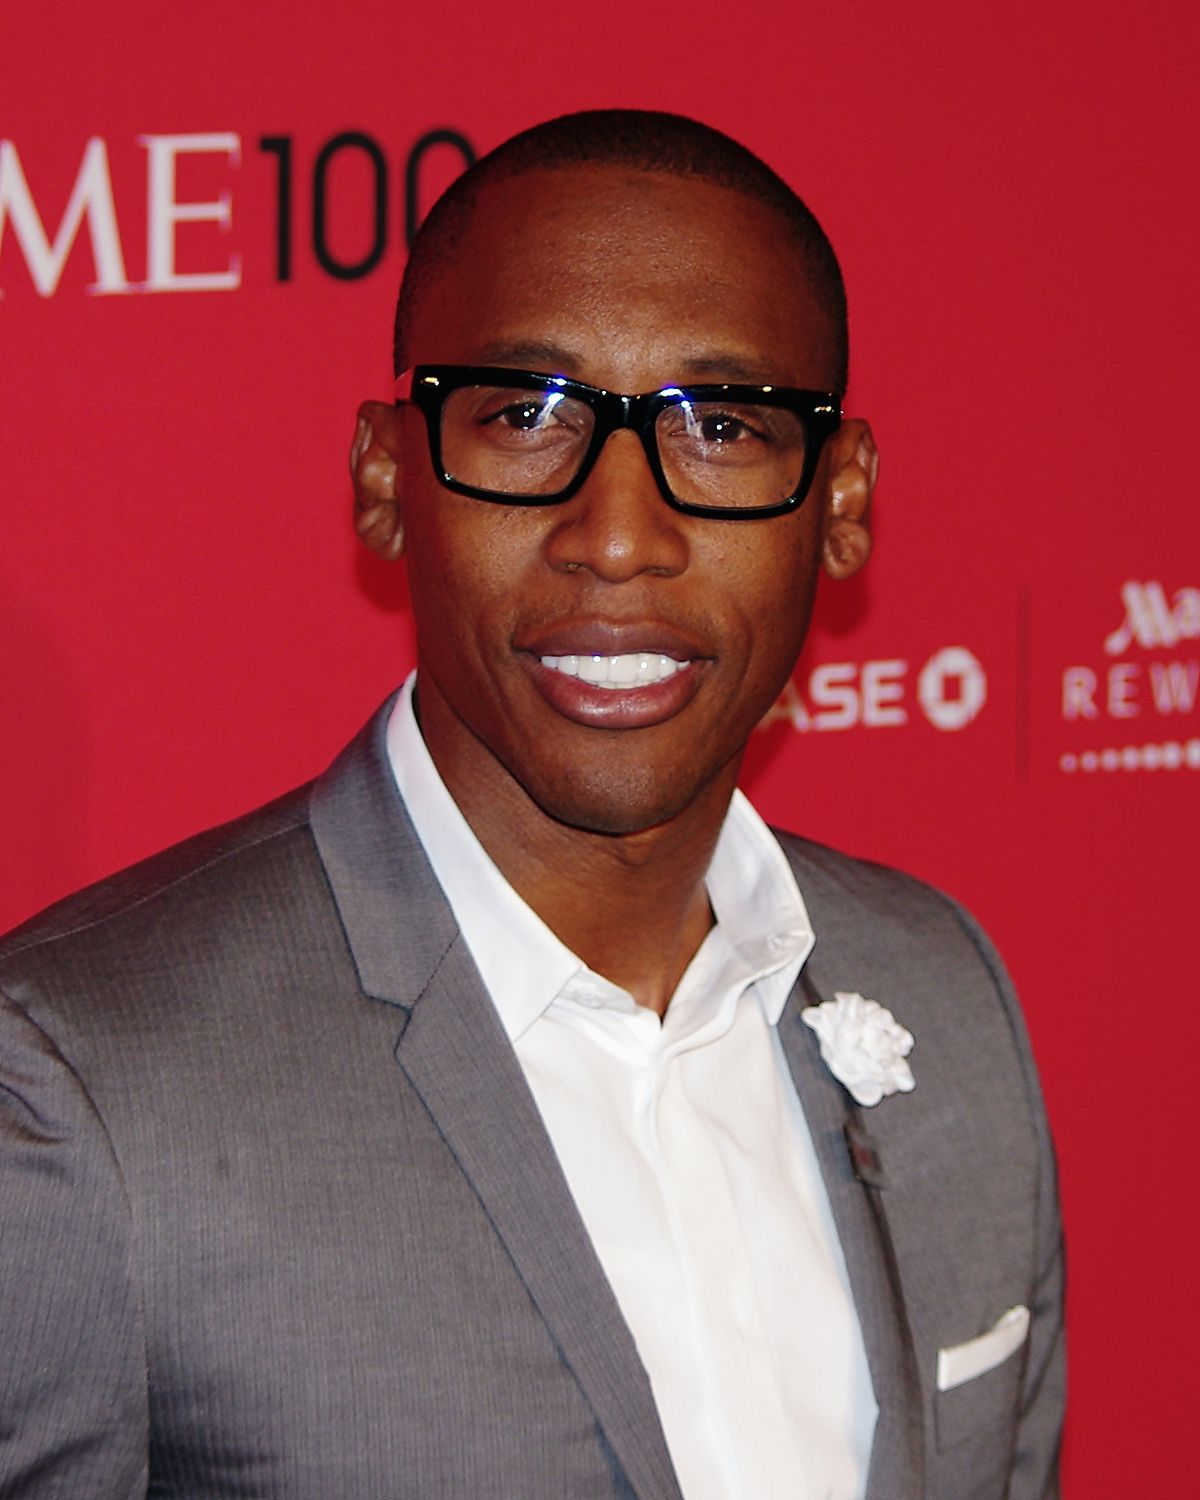 The 52-year old son of father (?) and mother(?), 173 cm tall Raphael Saadiq in 2018 photo